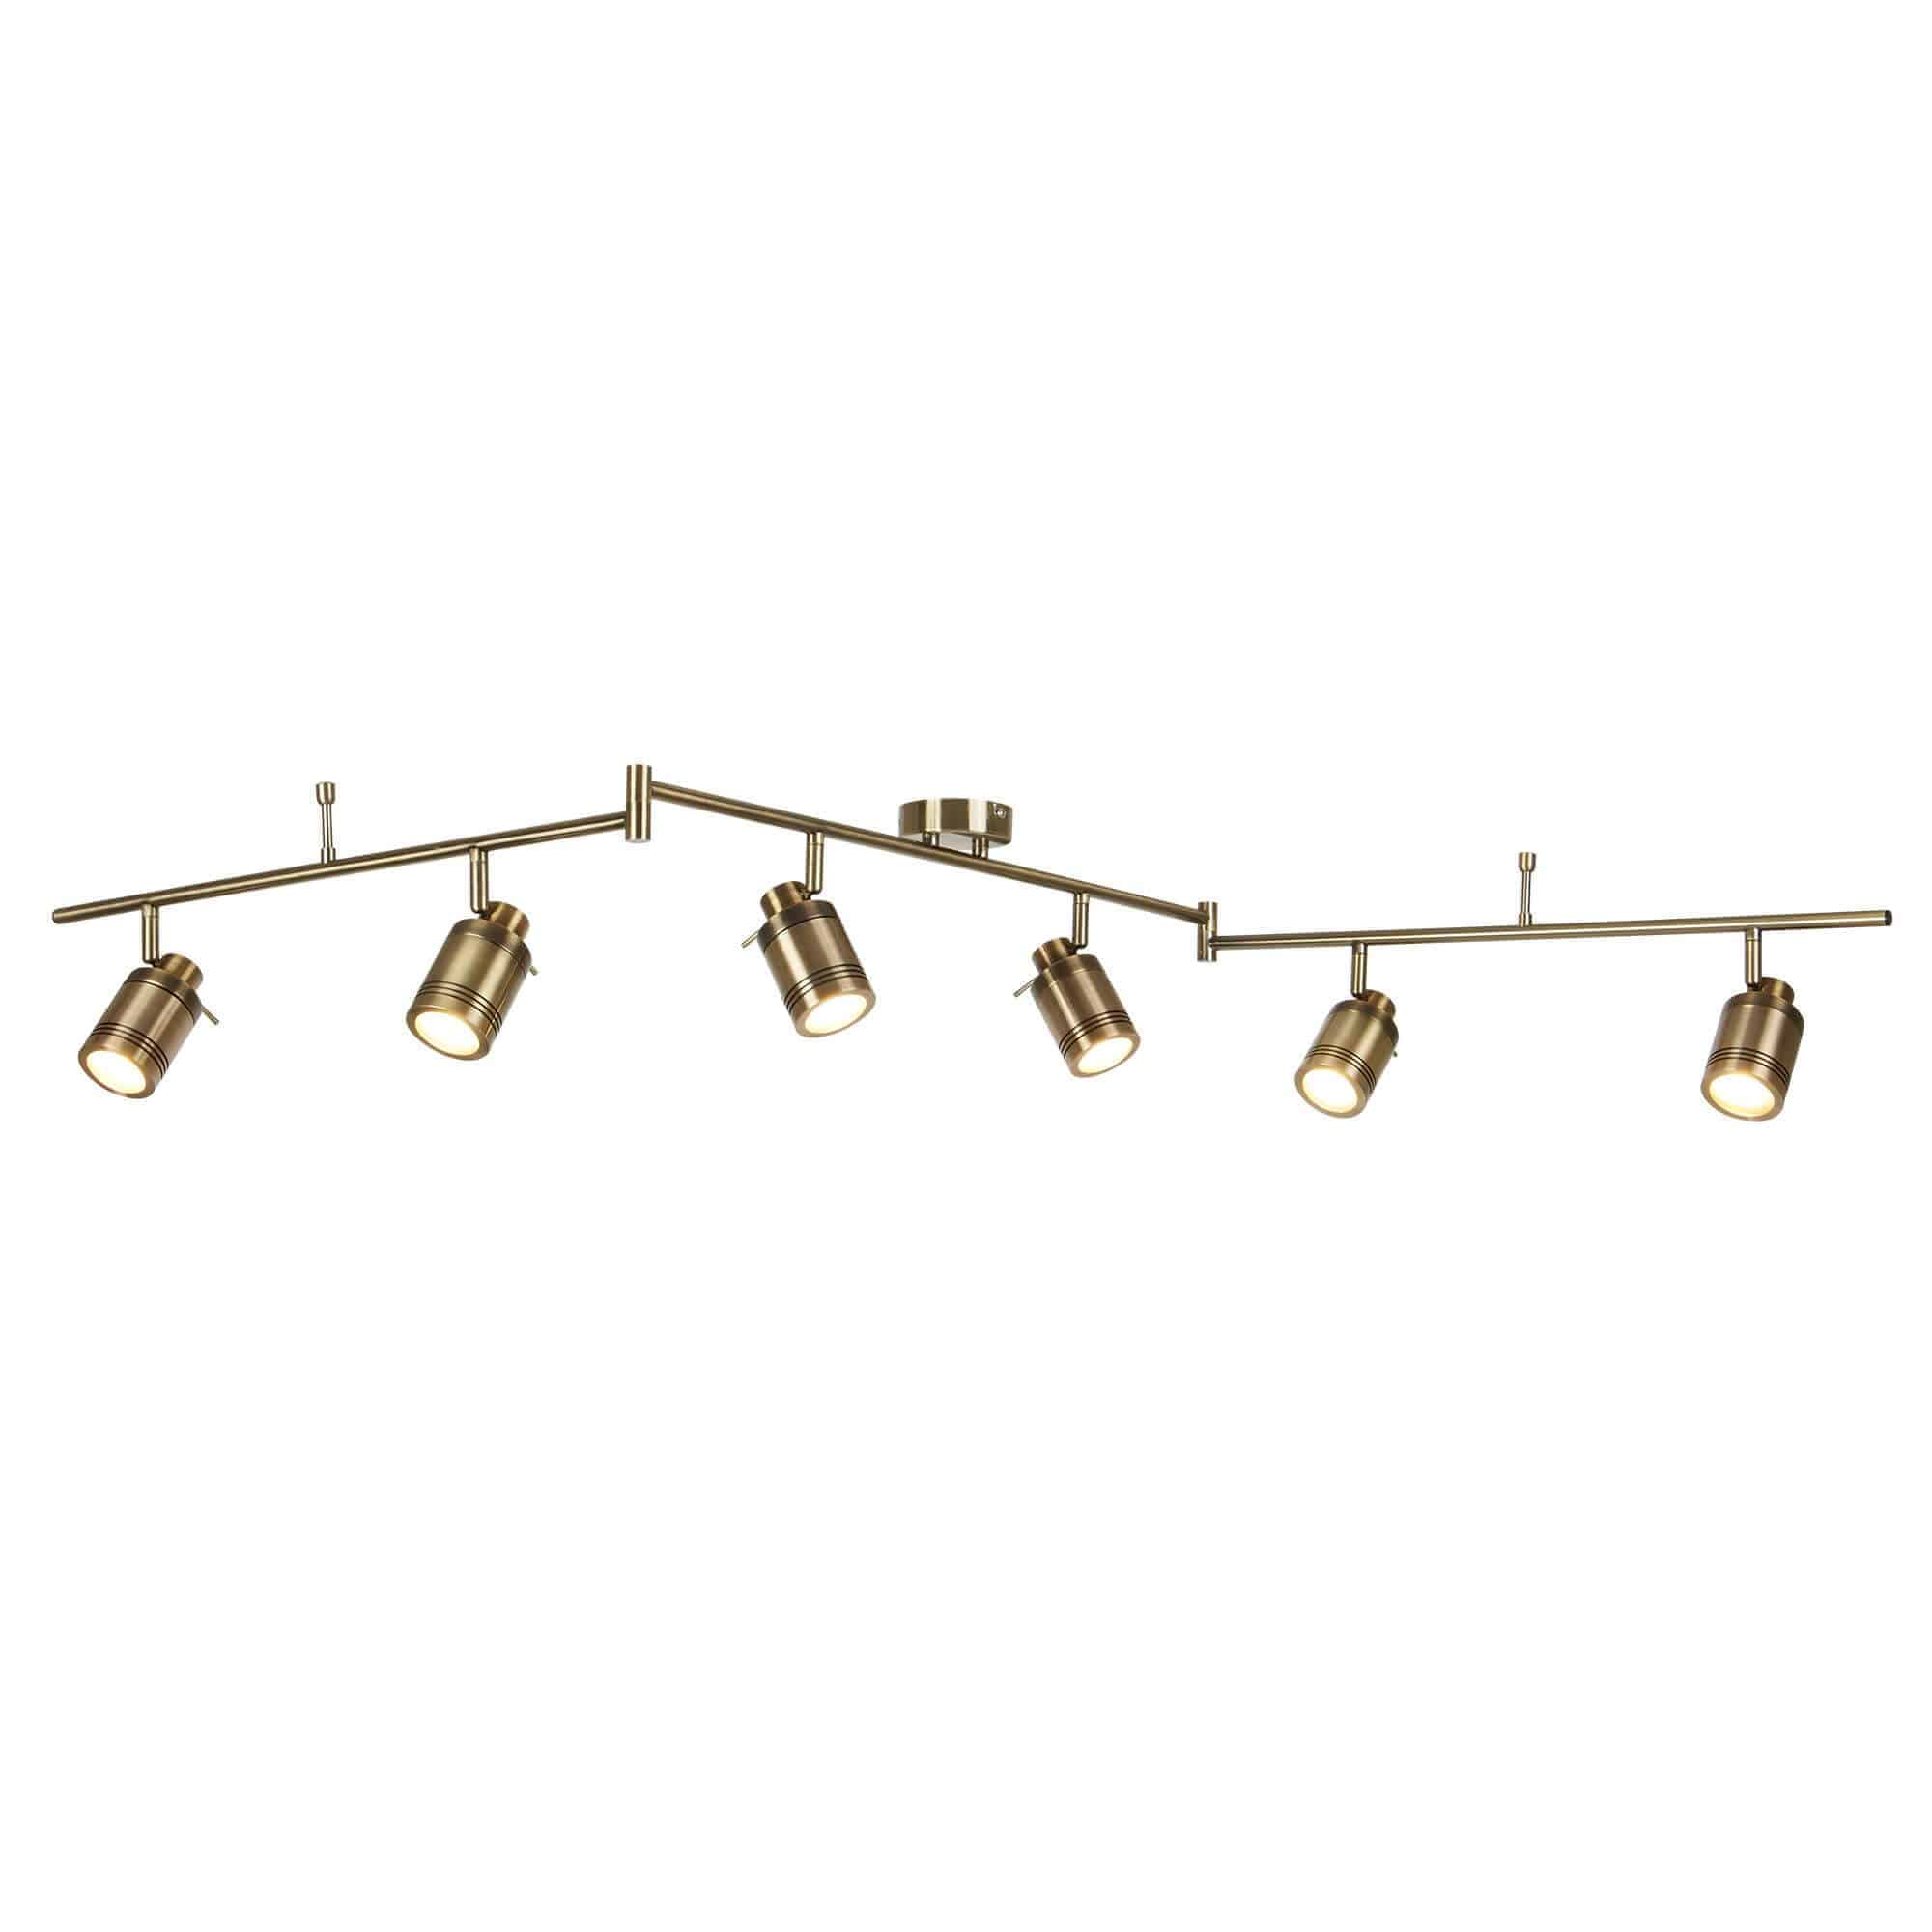 6606AB – Searchlight Samson Antique Brass 6 Light IP44 Bathroom Spot SplitBar